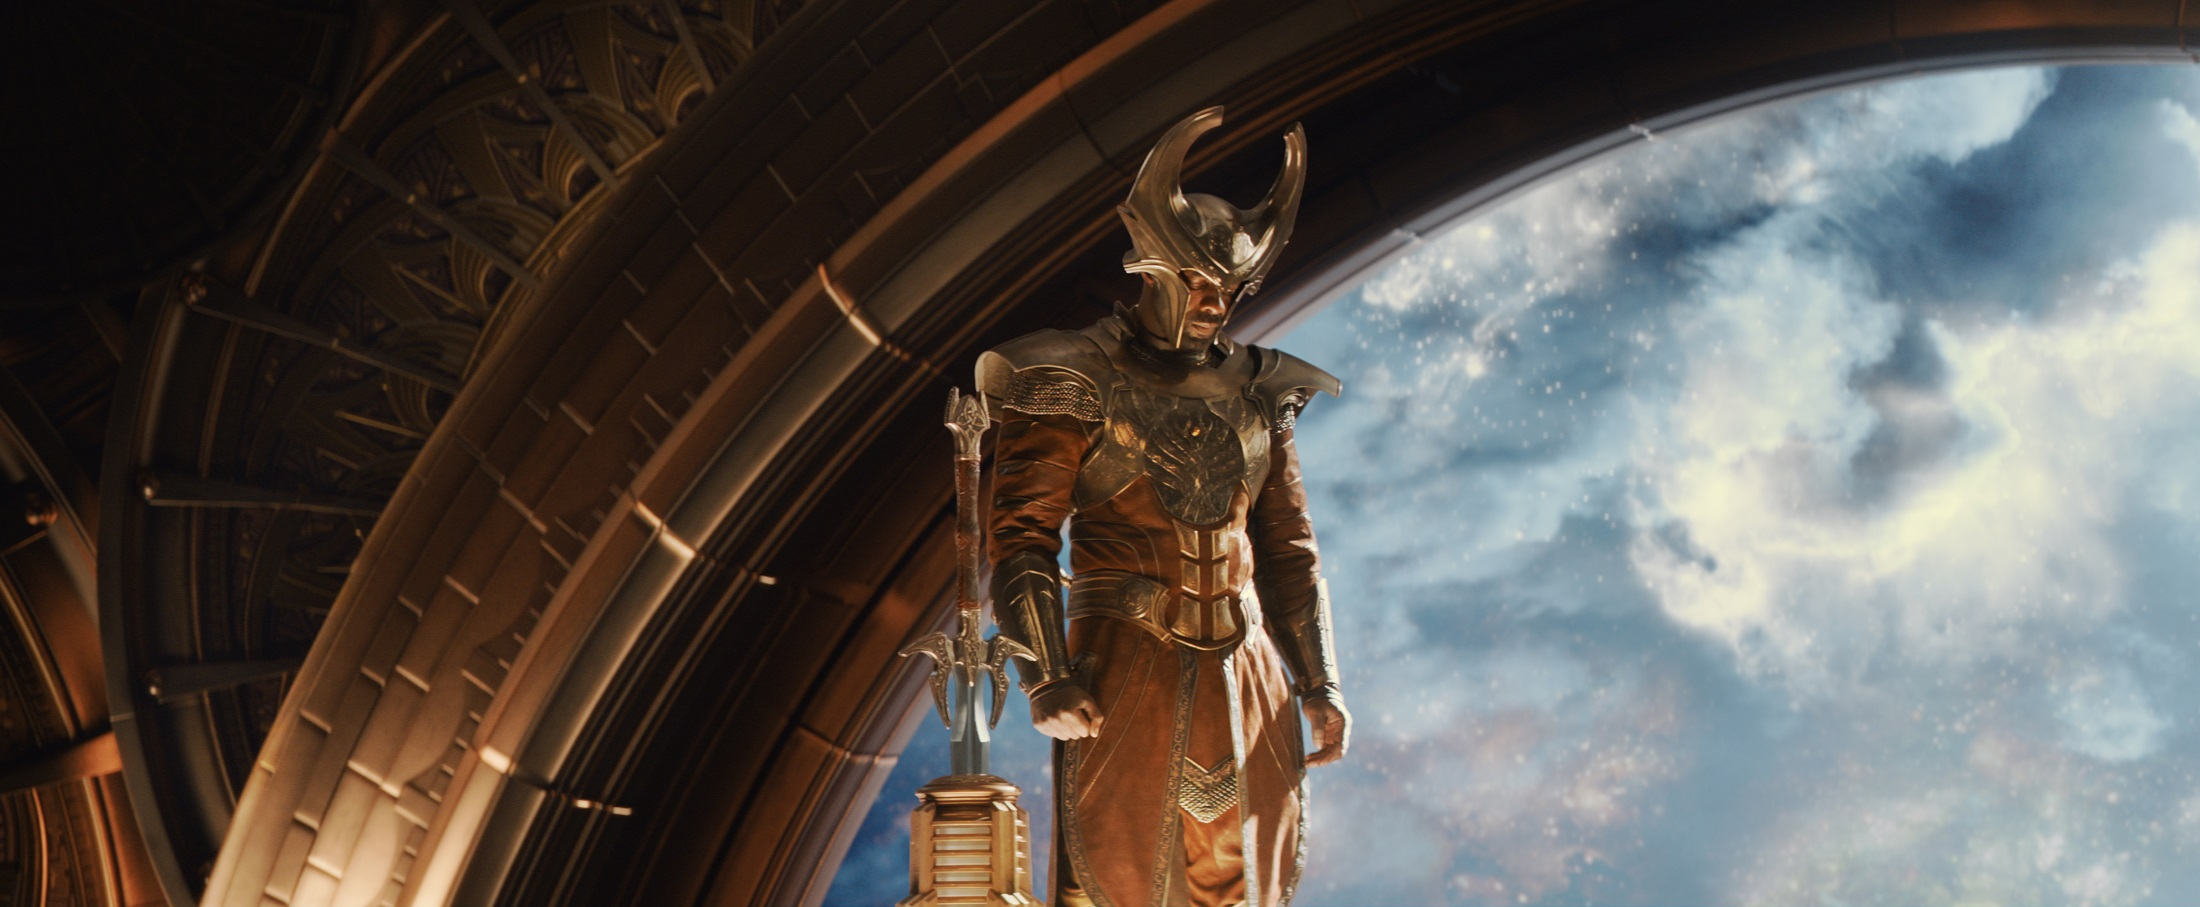 http://vignette4.wikia.nocookie.net/marvelcinematicuniverse/images/e/e7/Heimdall_again.jpg/revision/latest?cb=20131101150845